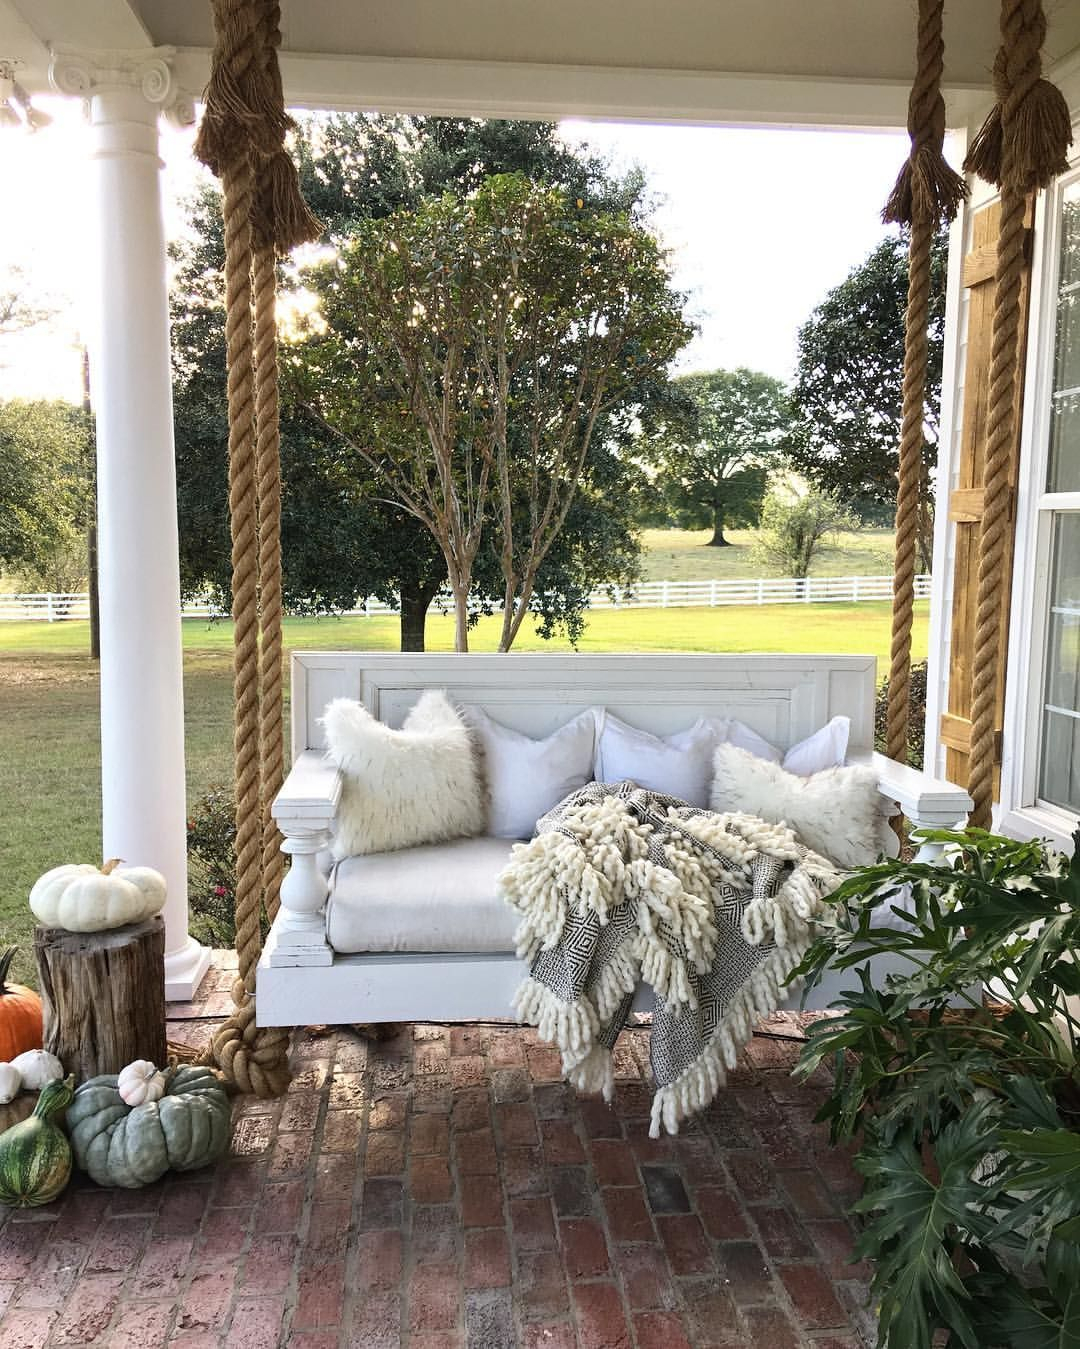 47 Rustic Farmhouse Porch Decor Ideas Hanging Manor Bed Intended For Country Style Hanging Daybed Swings (View 4 of 25)